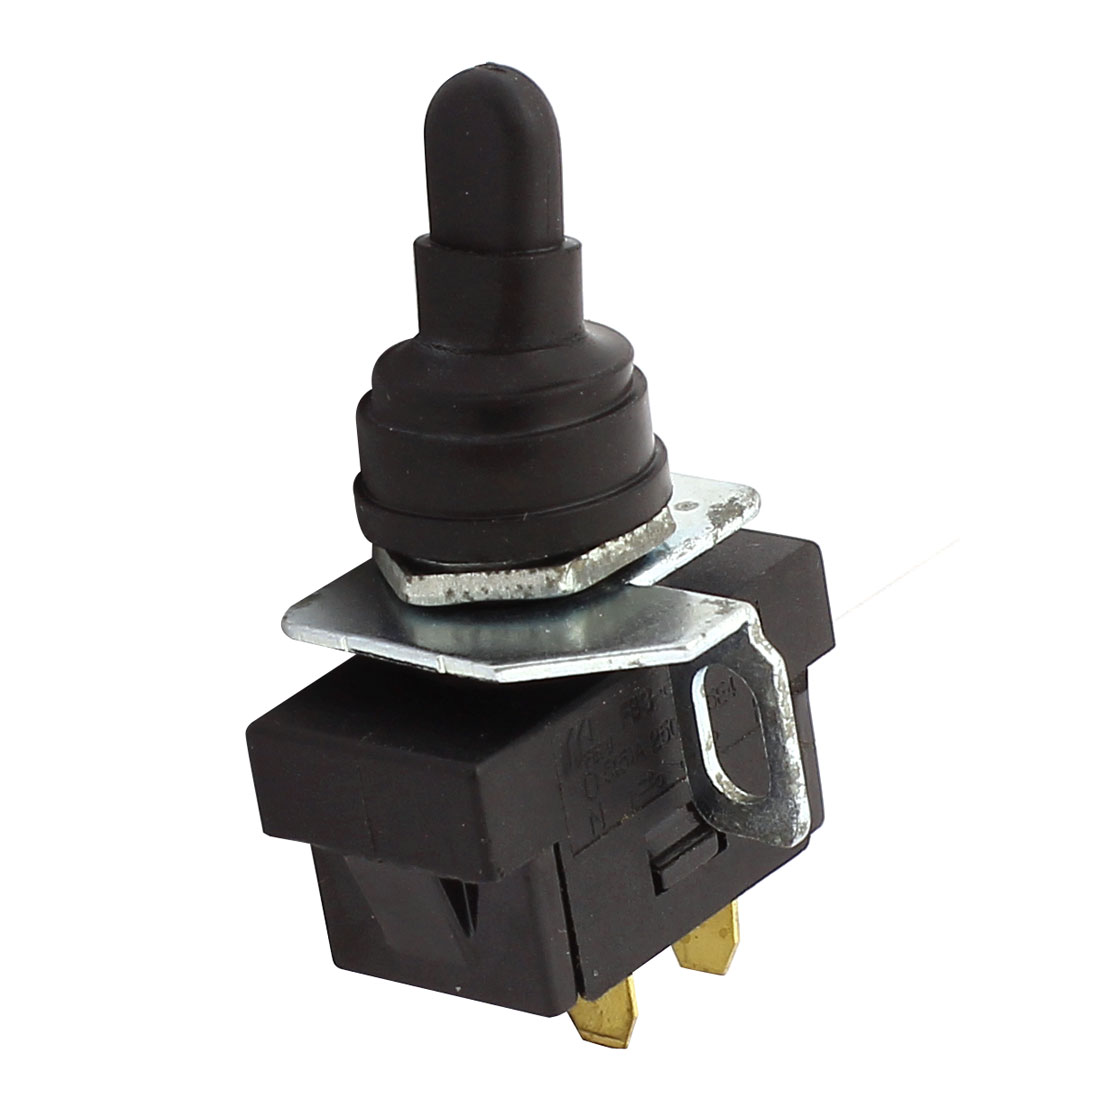 AC 250V 5(5)A 12mm Thread SPST 2 Position ON-OFF Latching Toggle Switch